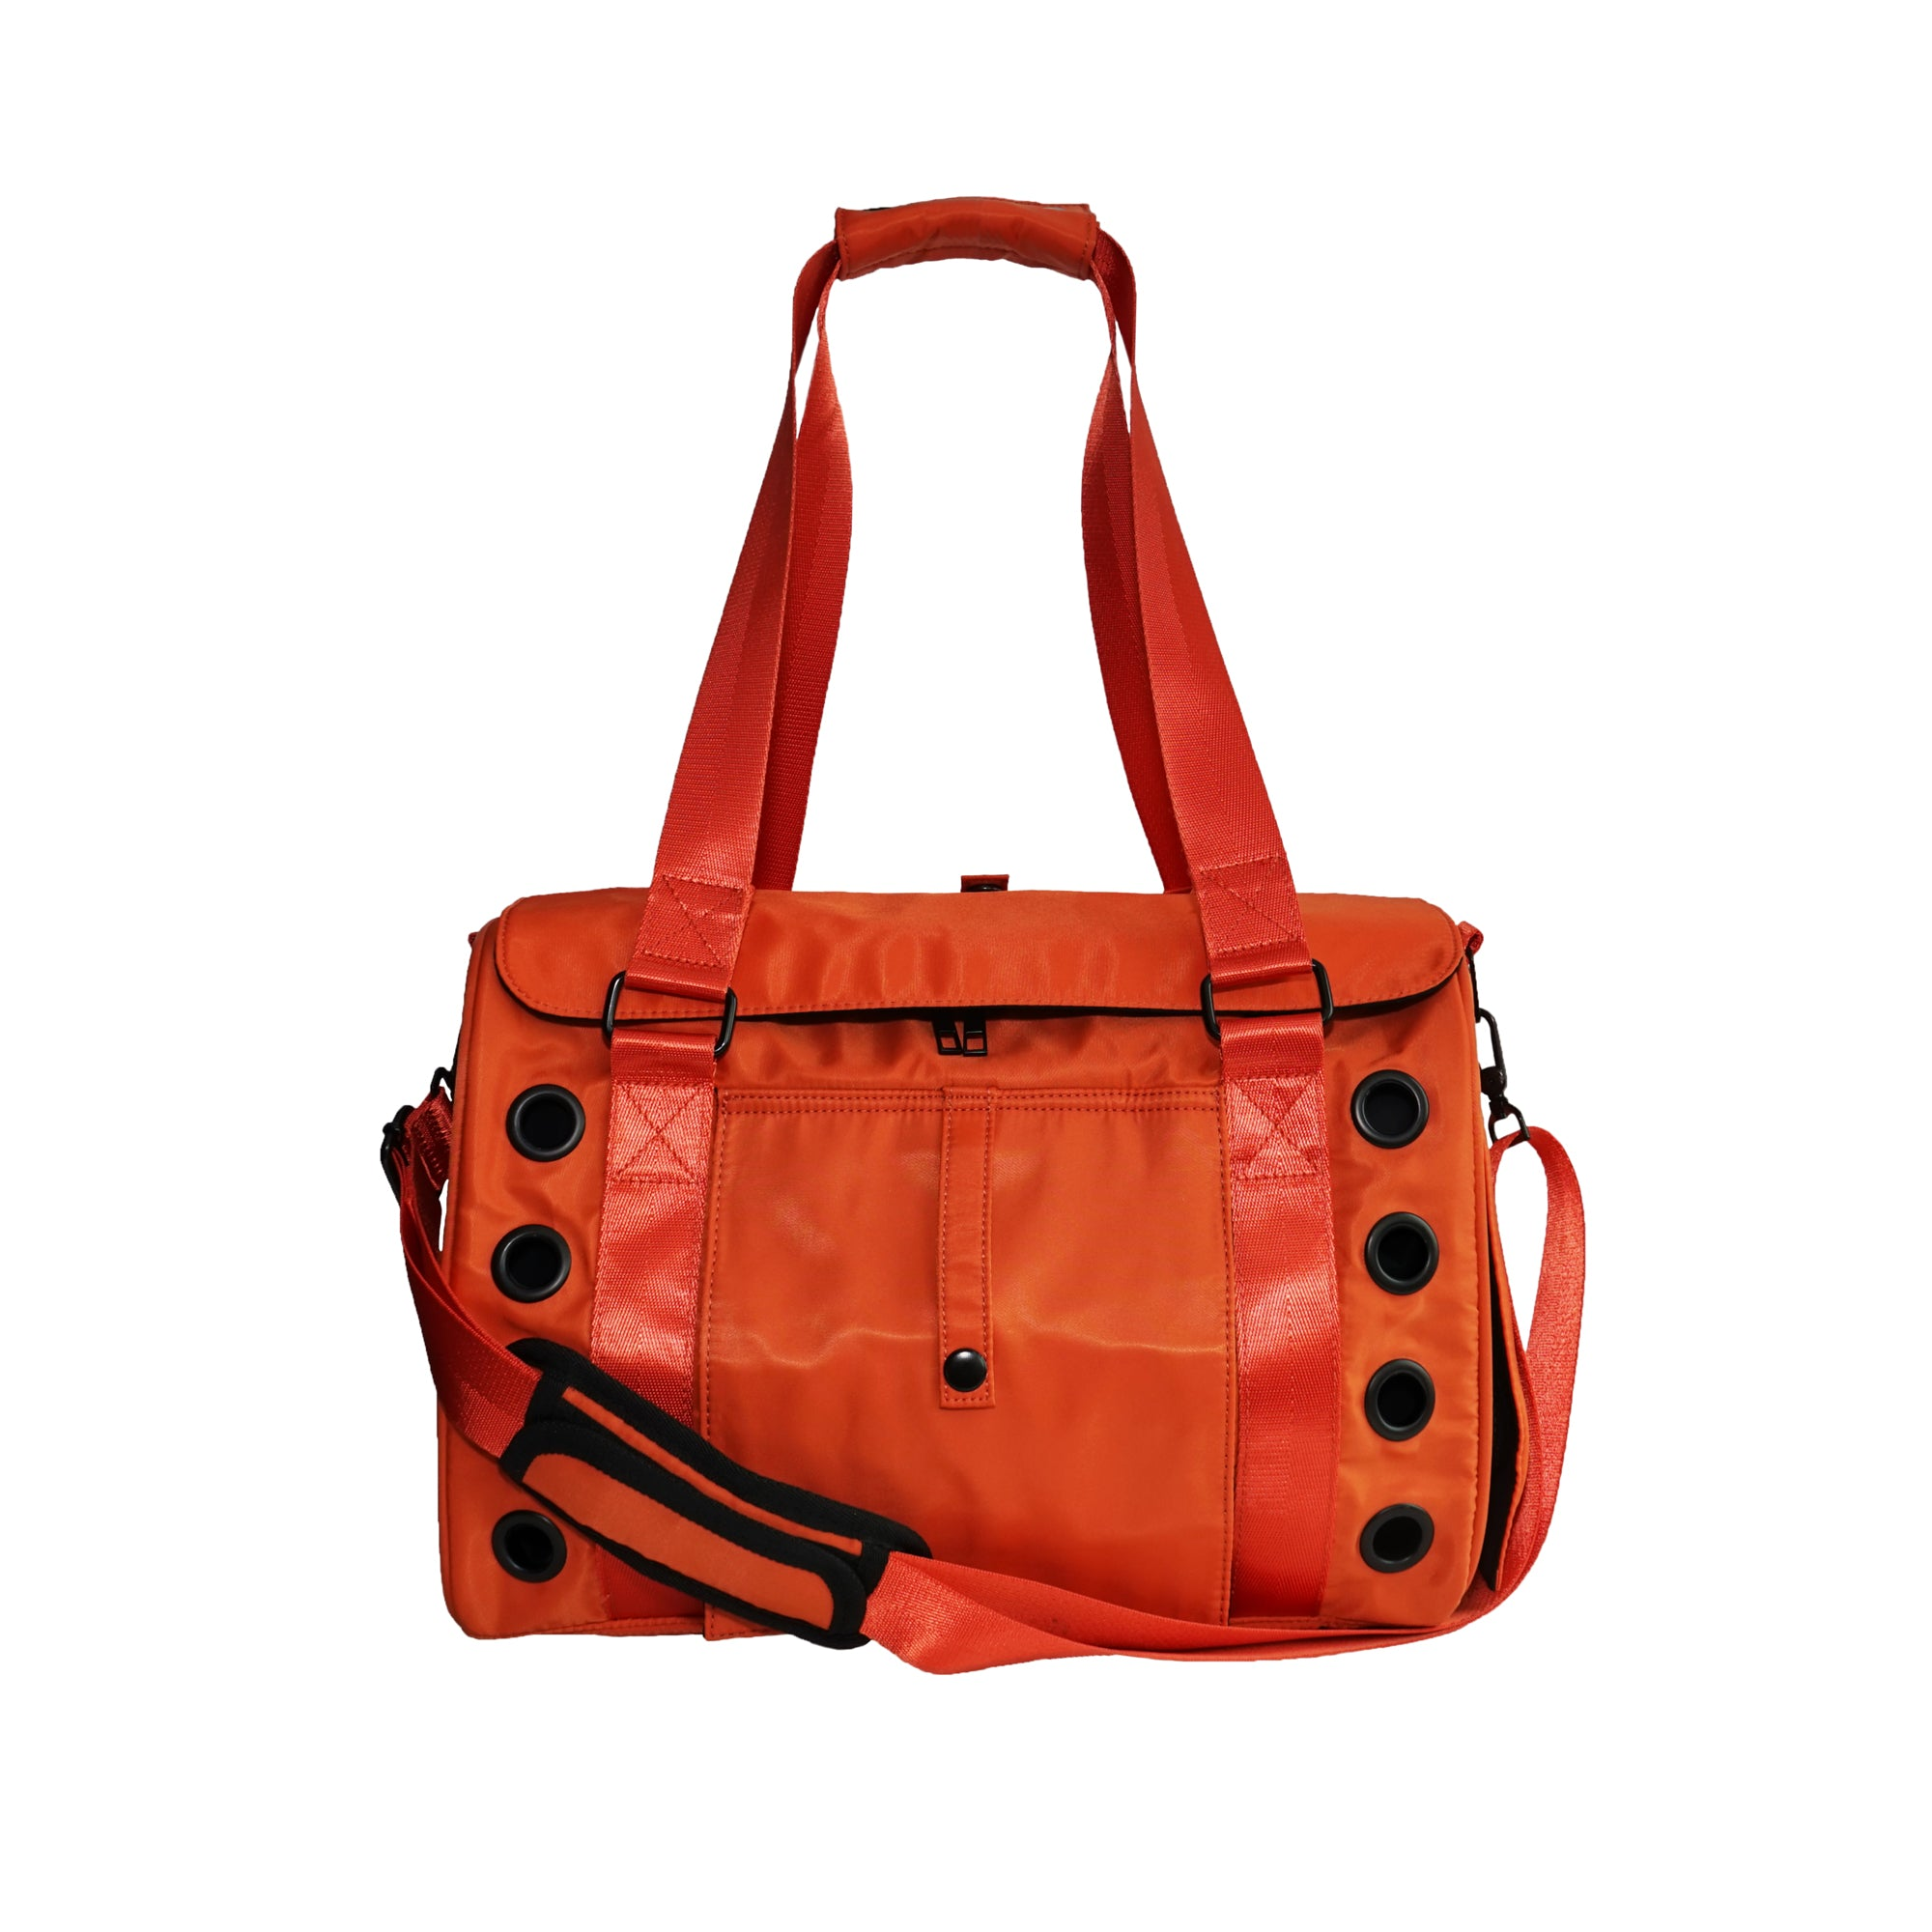 Koala Pet Carrier in Neon Orange (Sporty Nylon) - Candy Apple Ltd